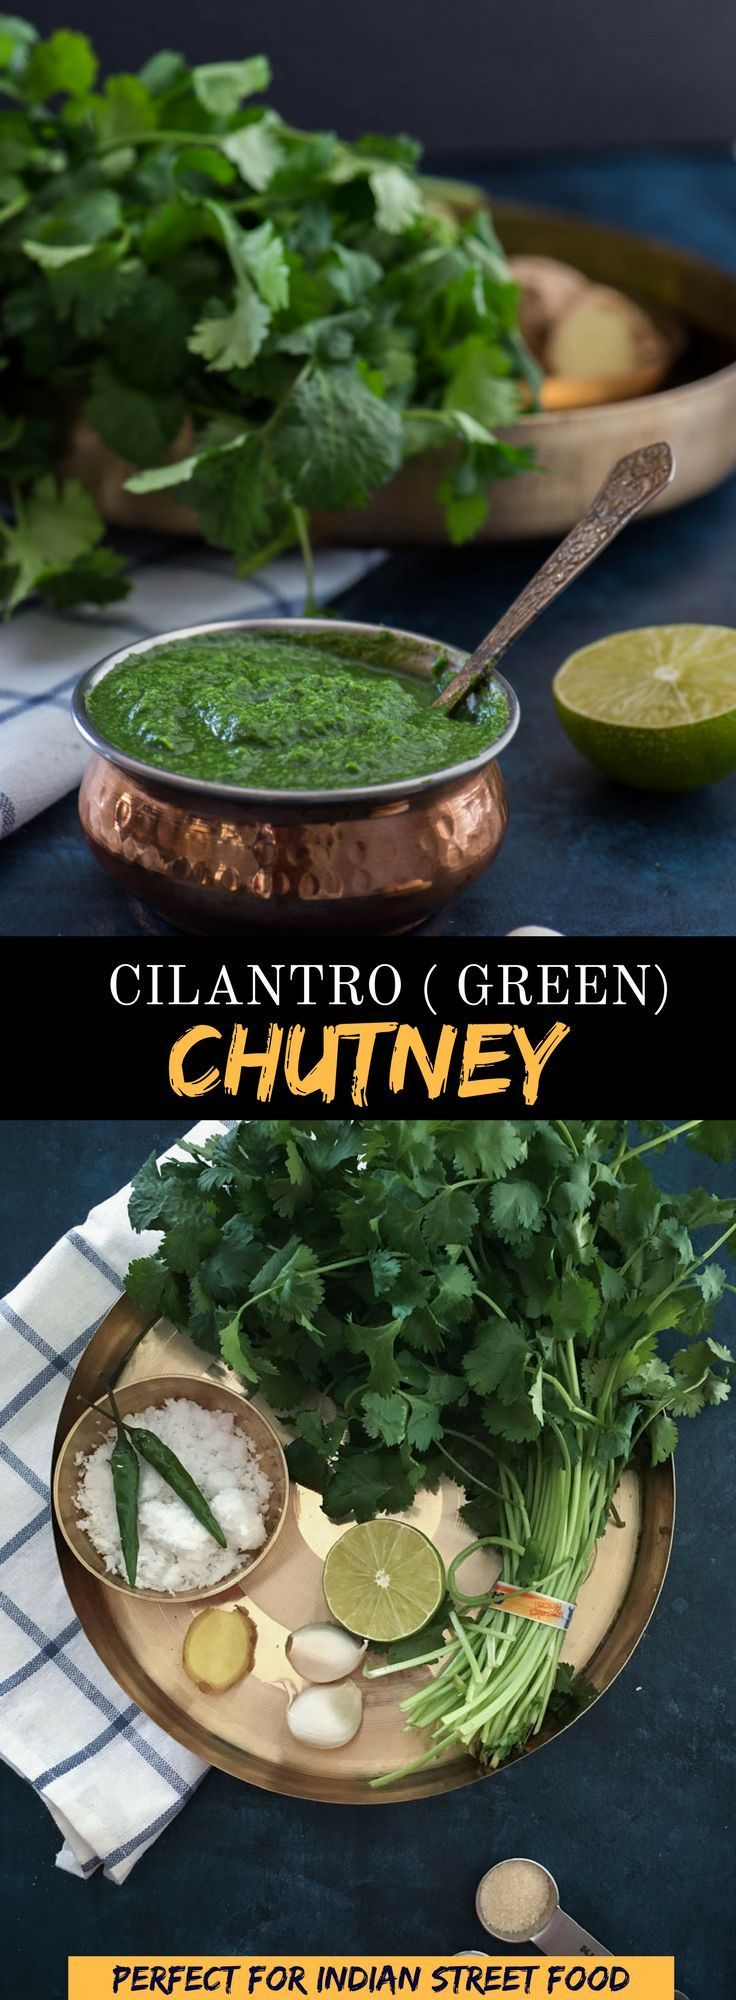 Learn how to make this simple and flavorful coriander or cilantro chutney and master the secret that makes most Indian street food so finger-licking good. via @simmertoslimmer